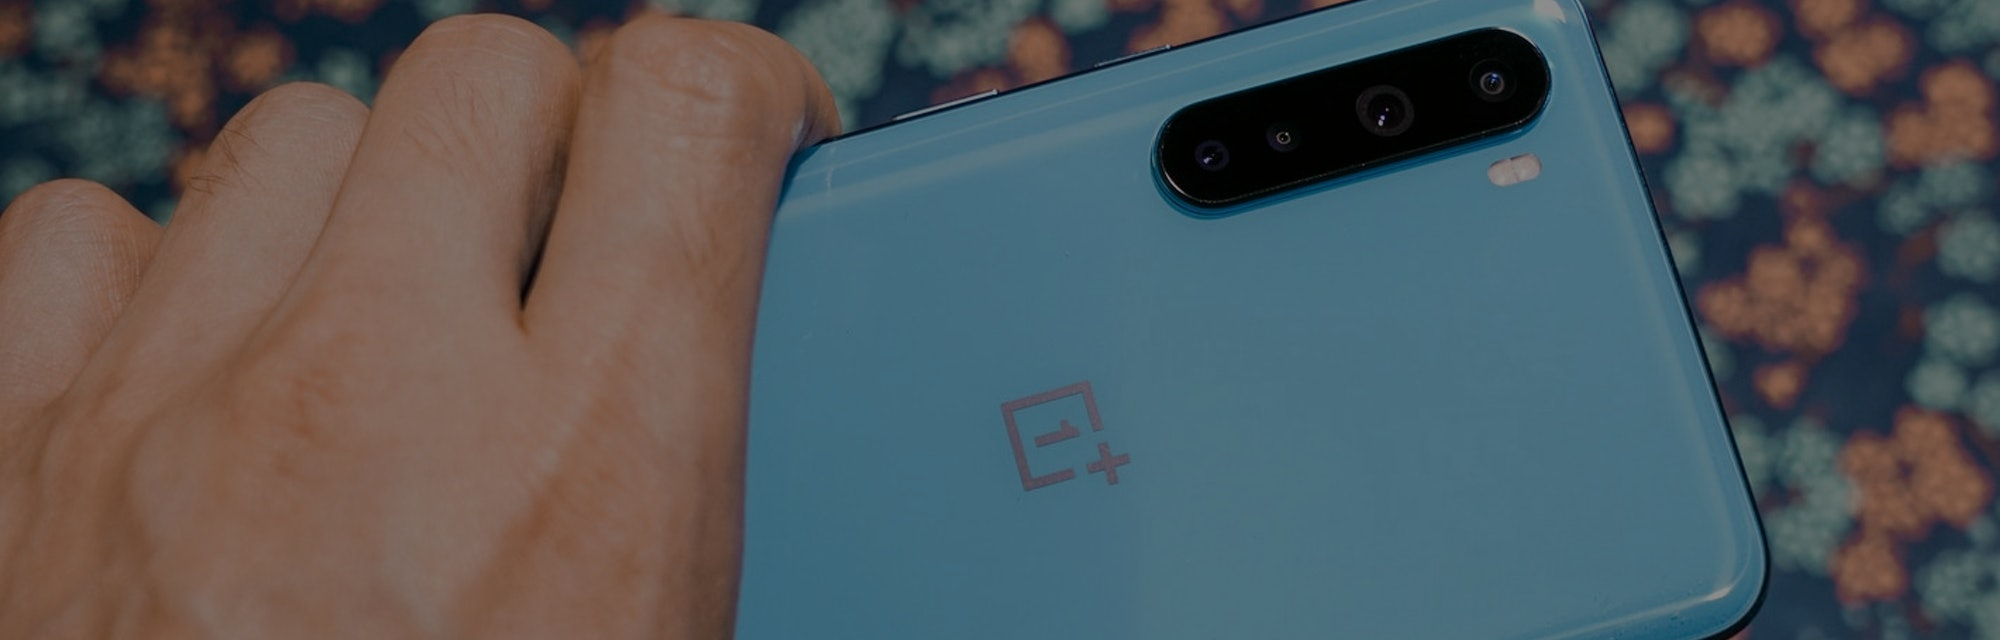 OnePlus phones no longer have pre-installed Facebook apps and services.